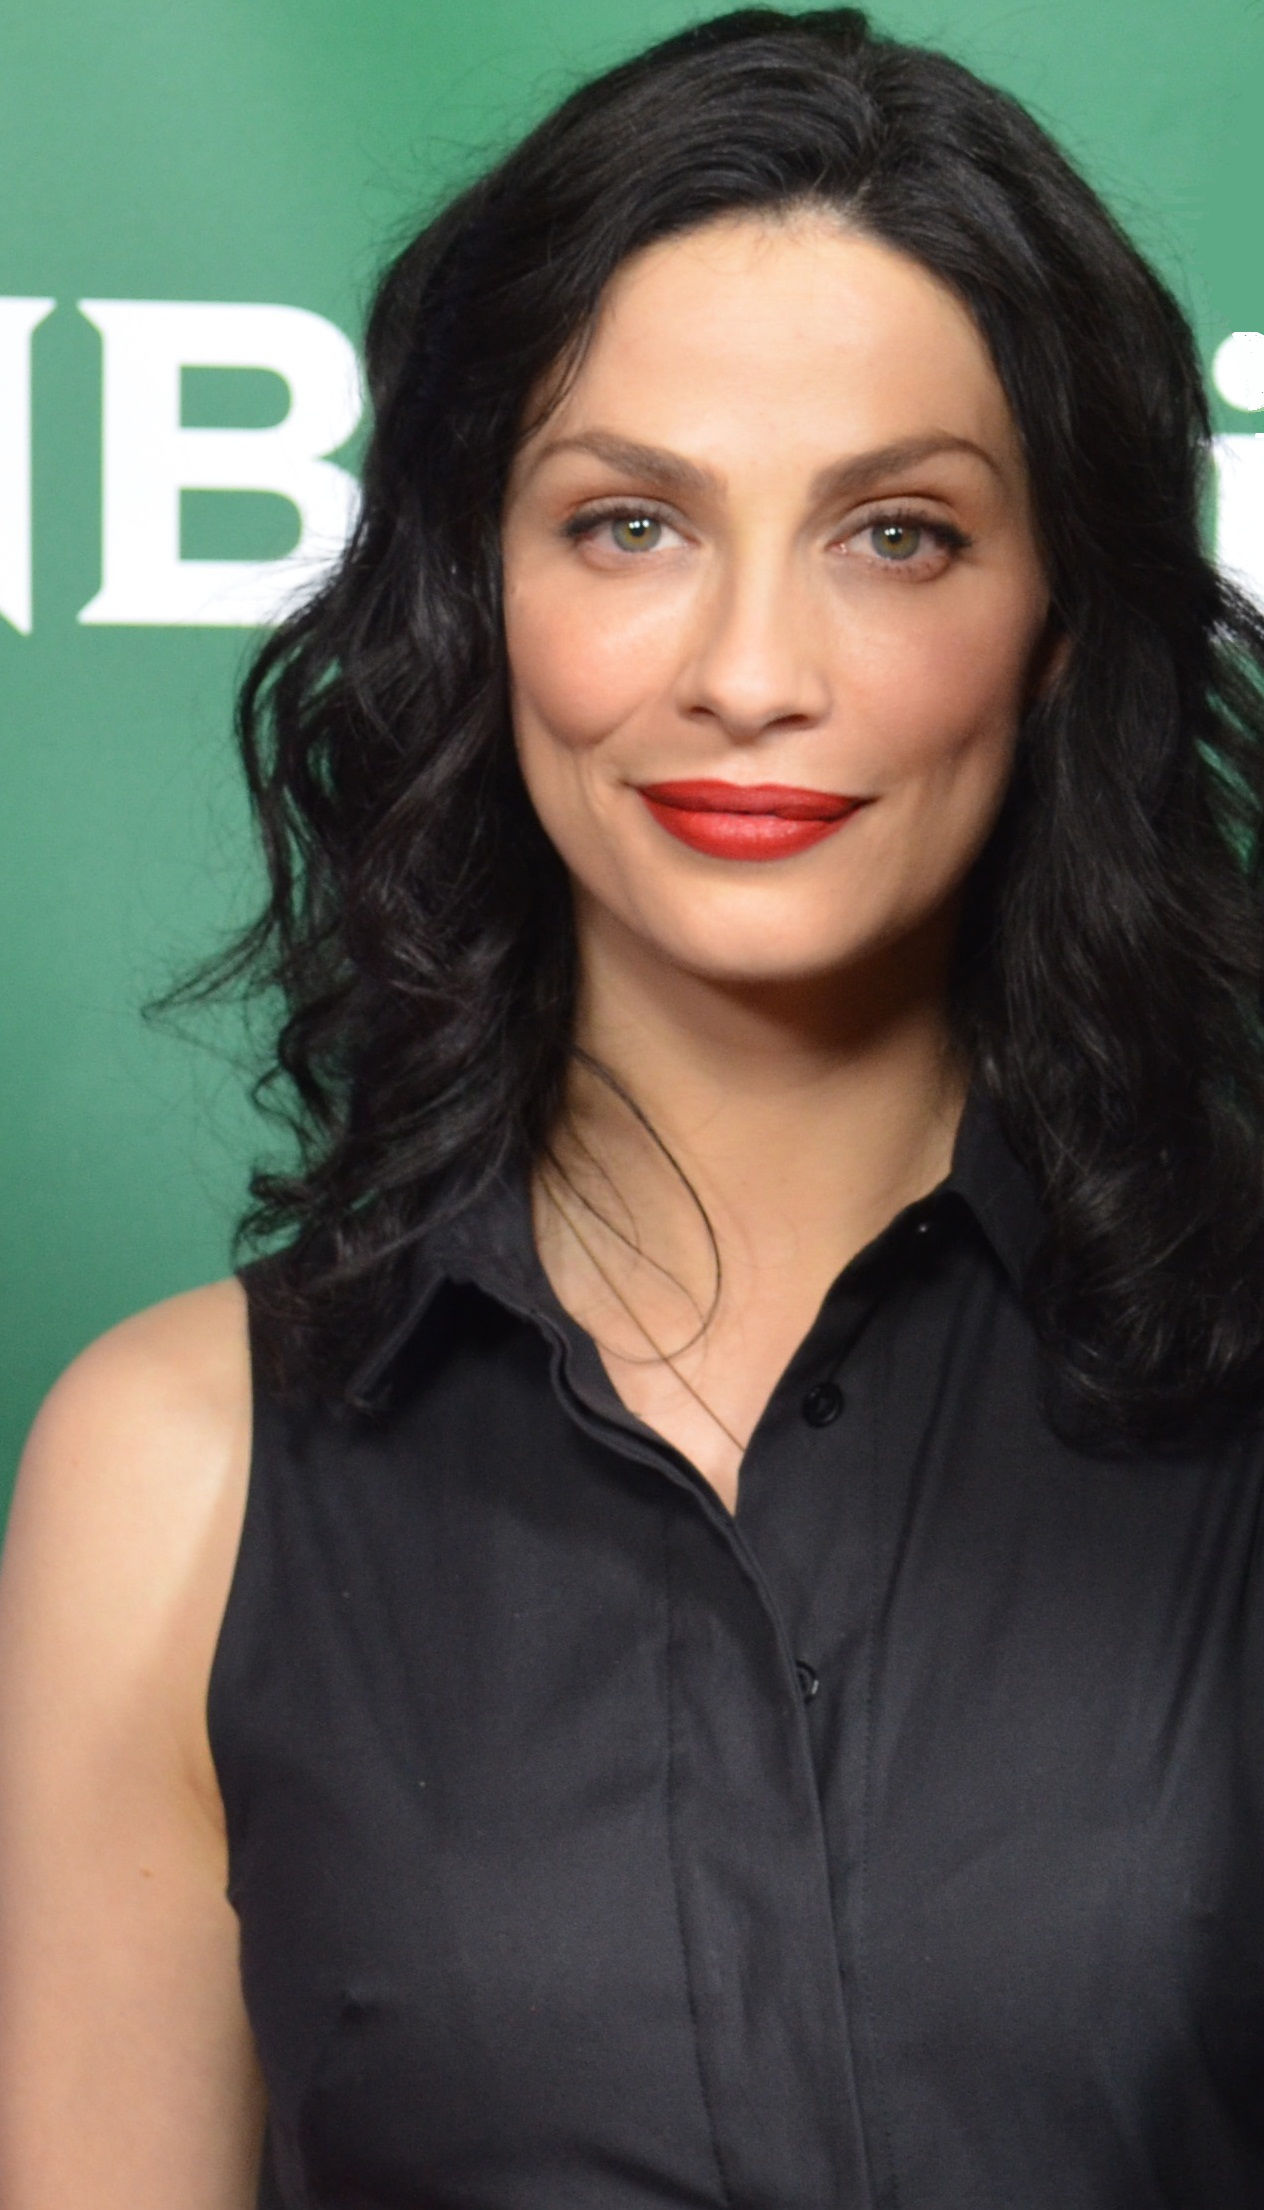 Photo of Joanne Kelly: Actress